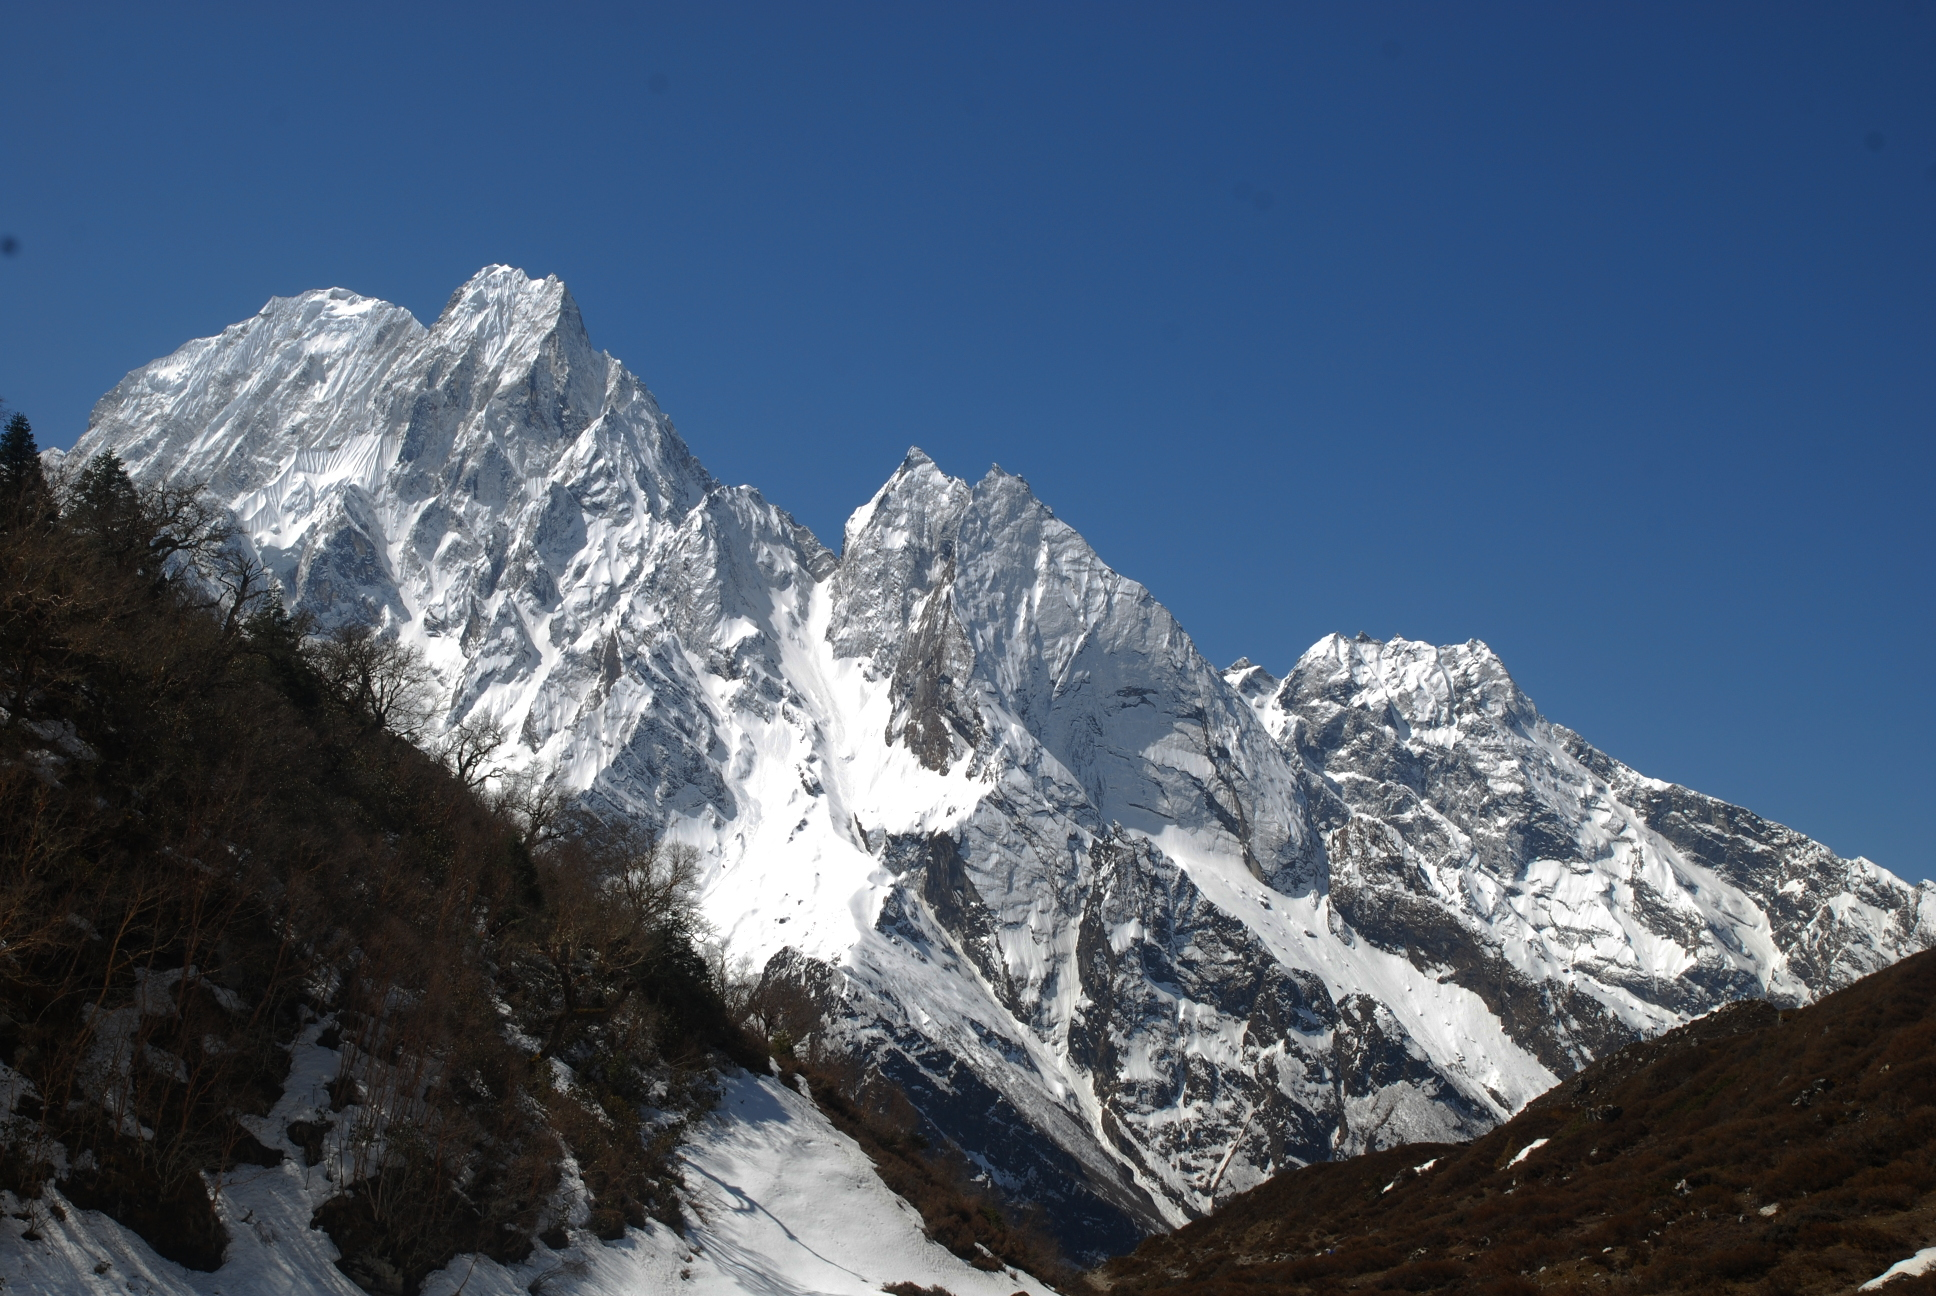 Manaslu_Mountains5_AANepal.JPG